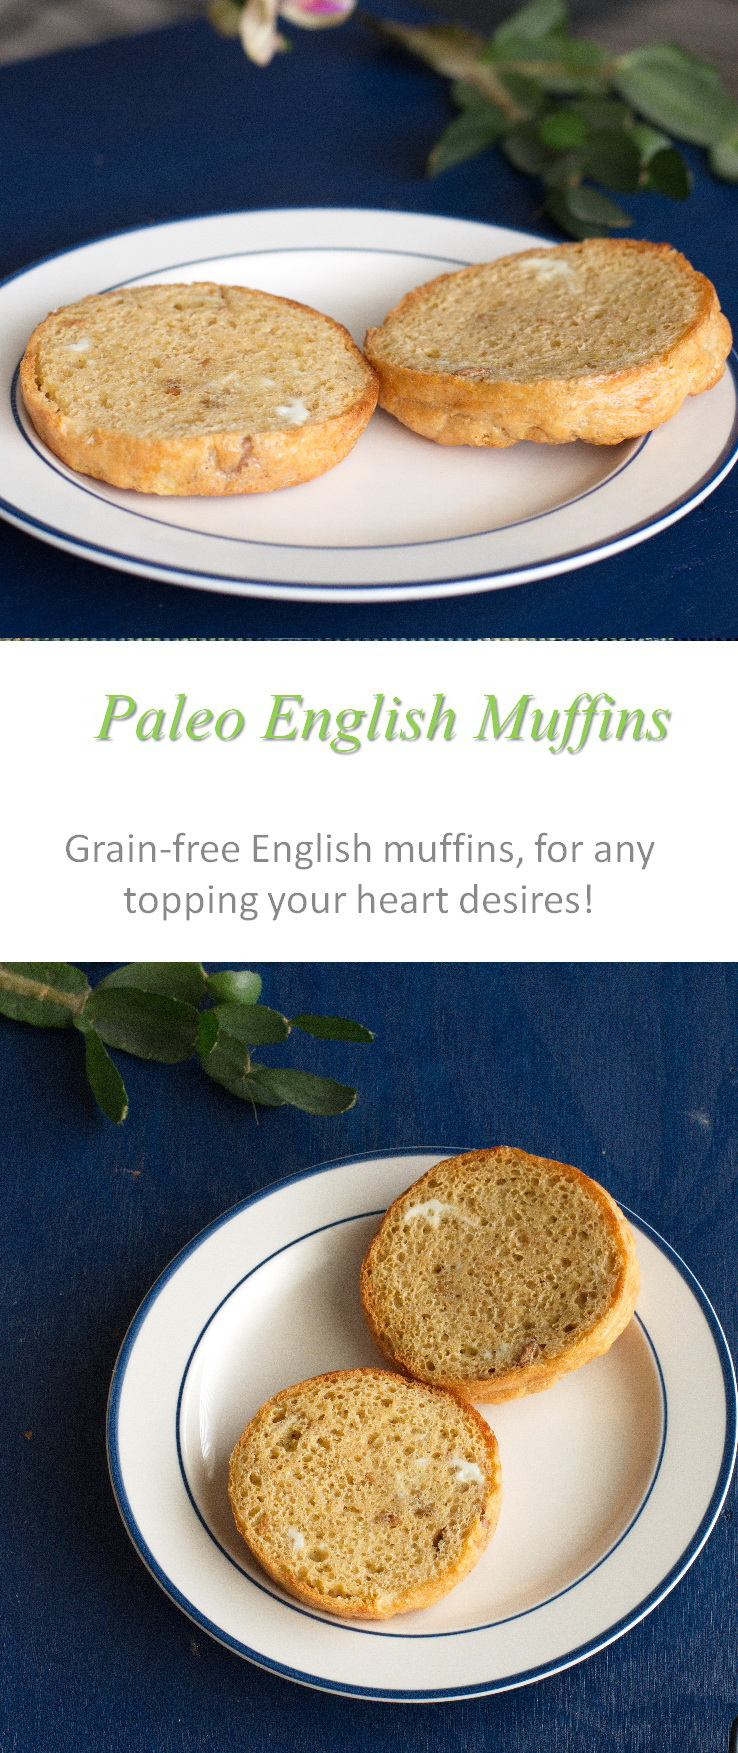 An awesome replacement for the commercial English muffins - made Paleo-friendly, gluten and dairy-free - for all your favorite toppings! #englishmuffins #cookathome #glutenfree #dairyfree